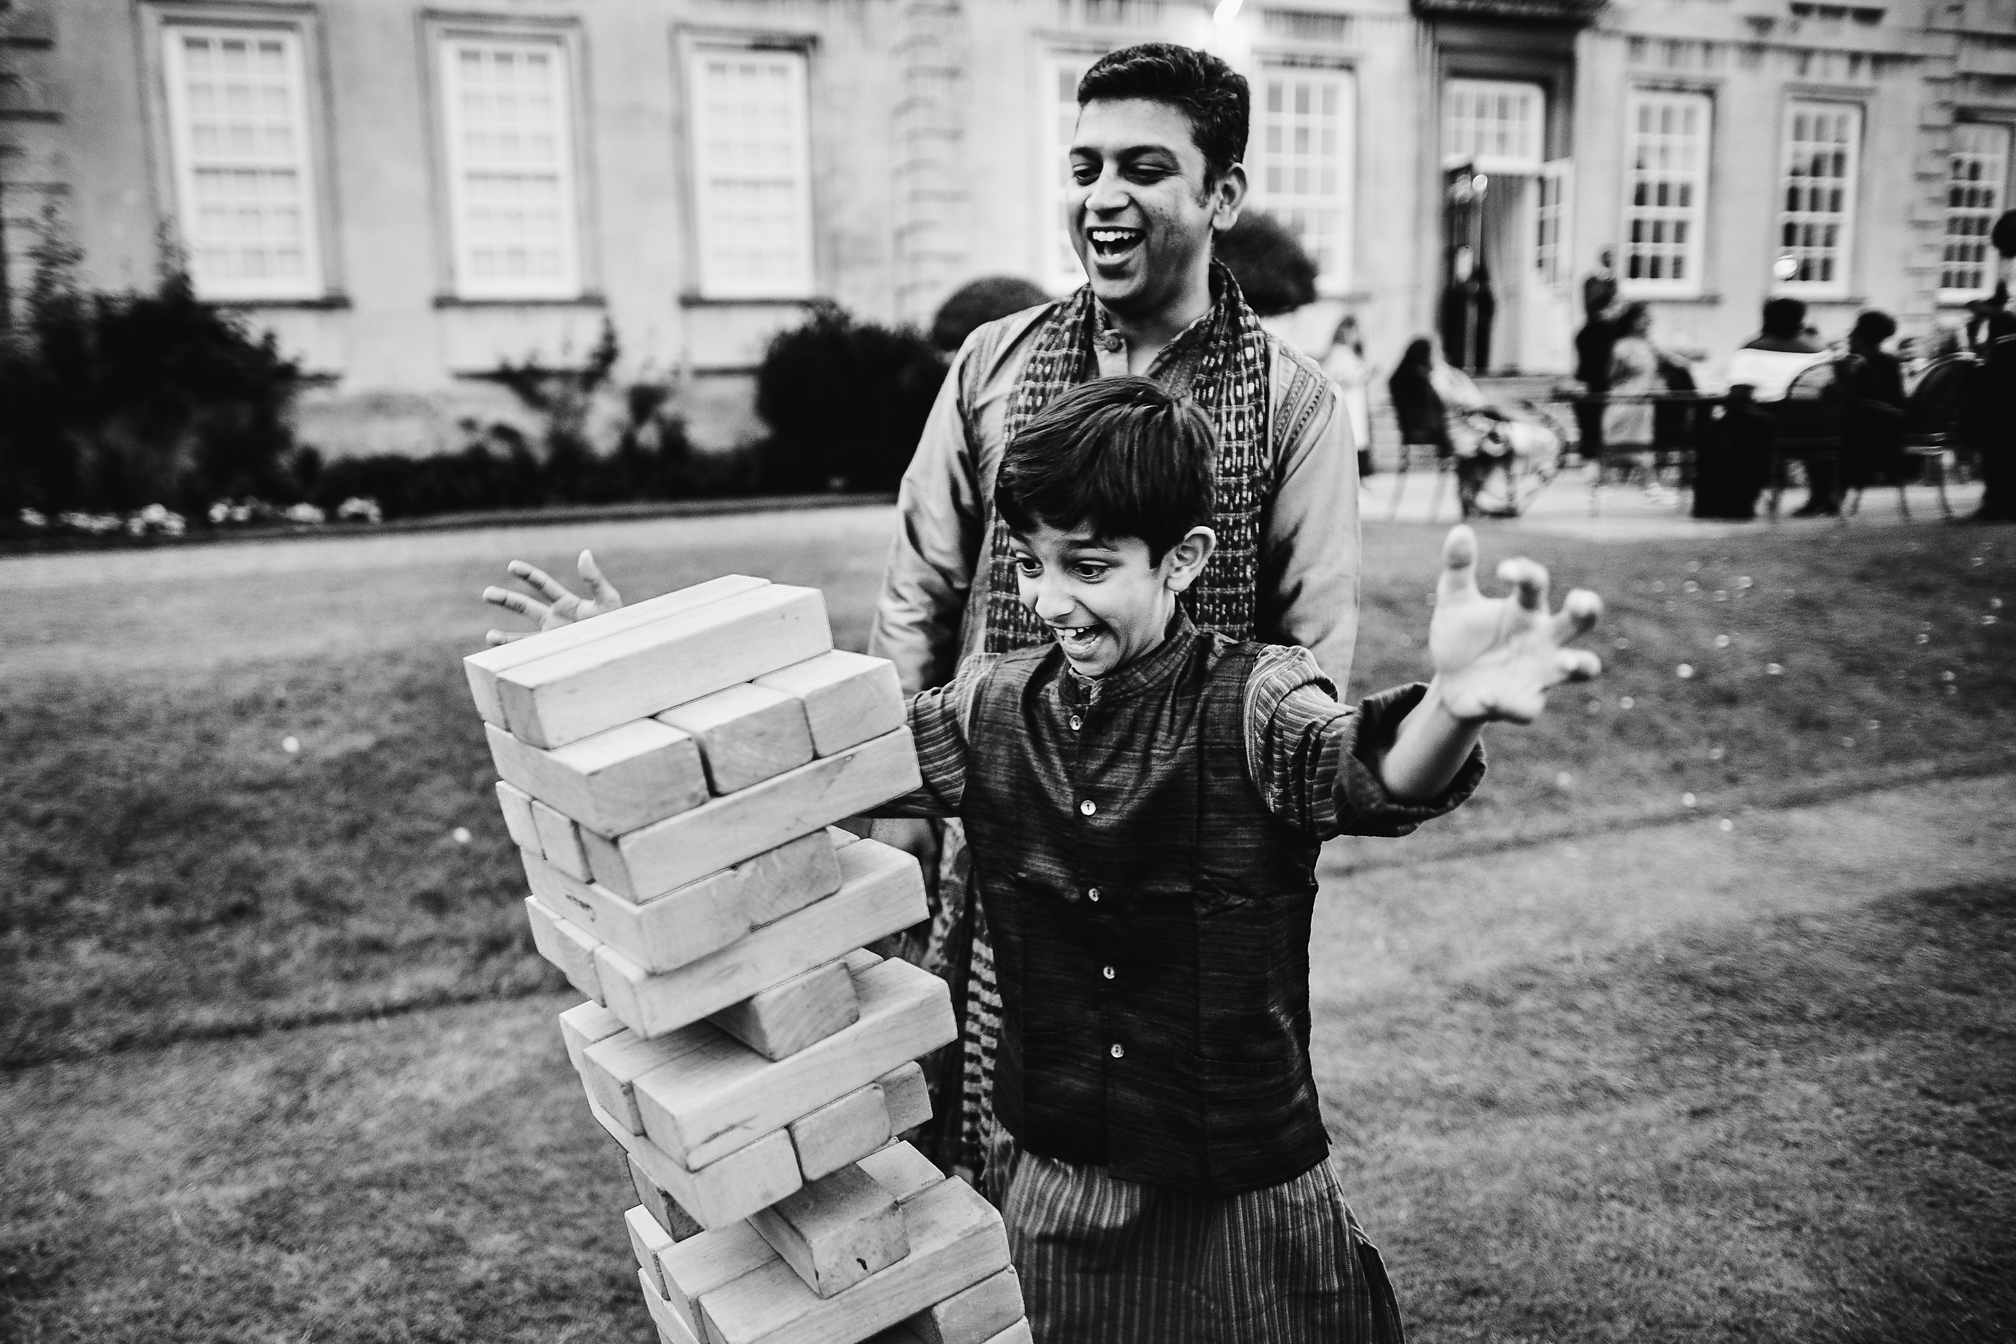 Hilarious young wedding guest playing Jenga